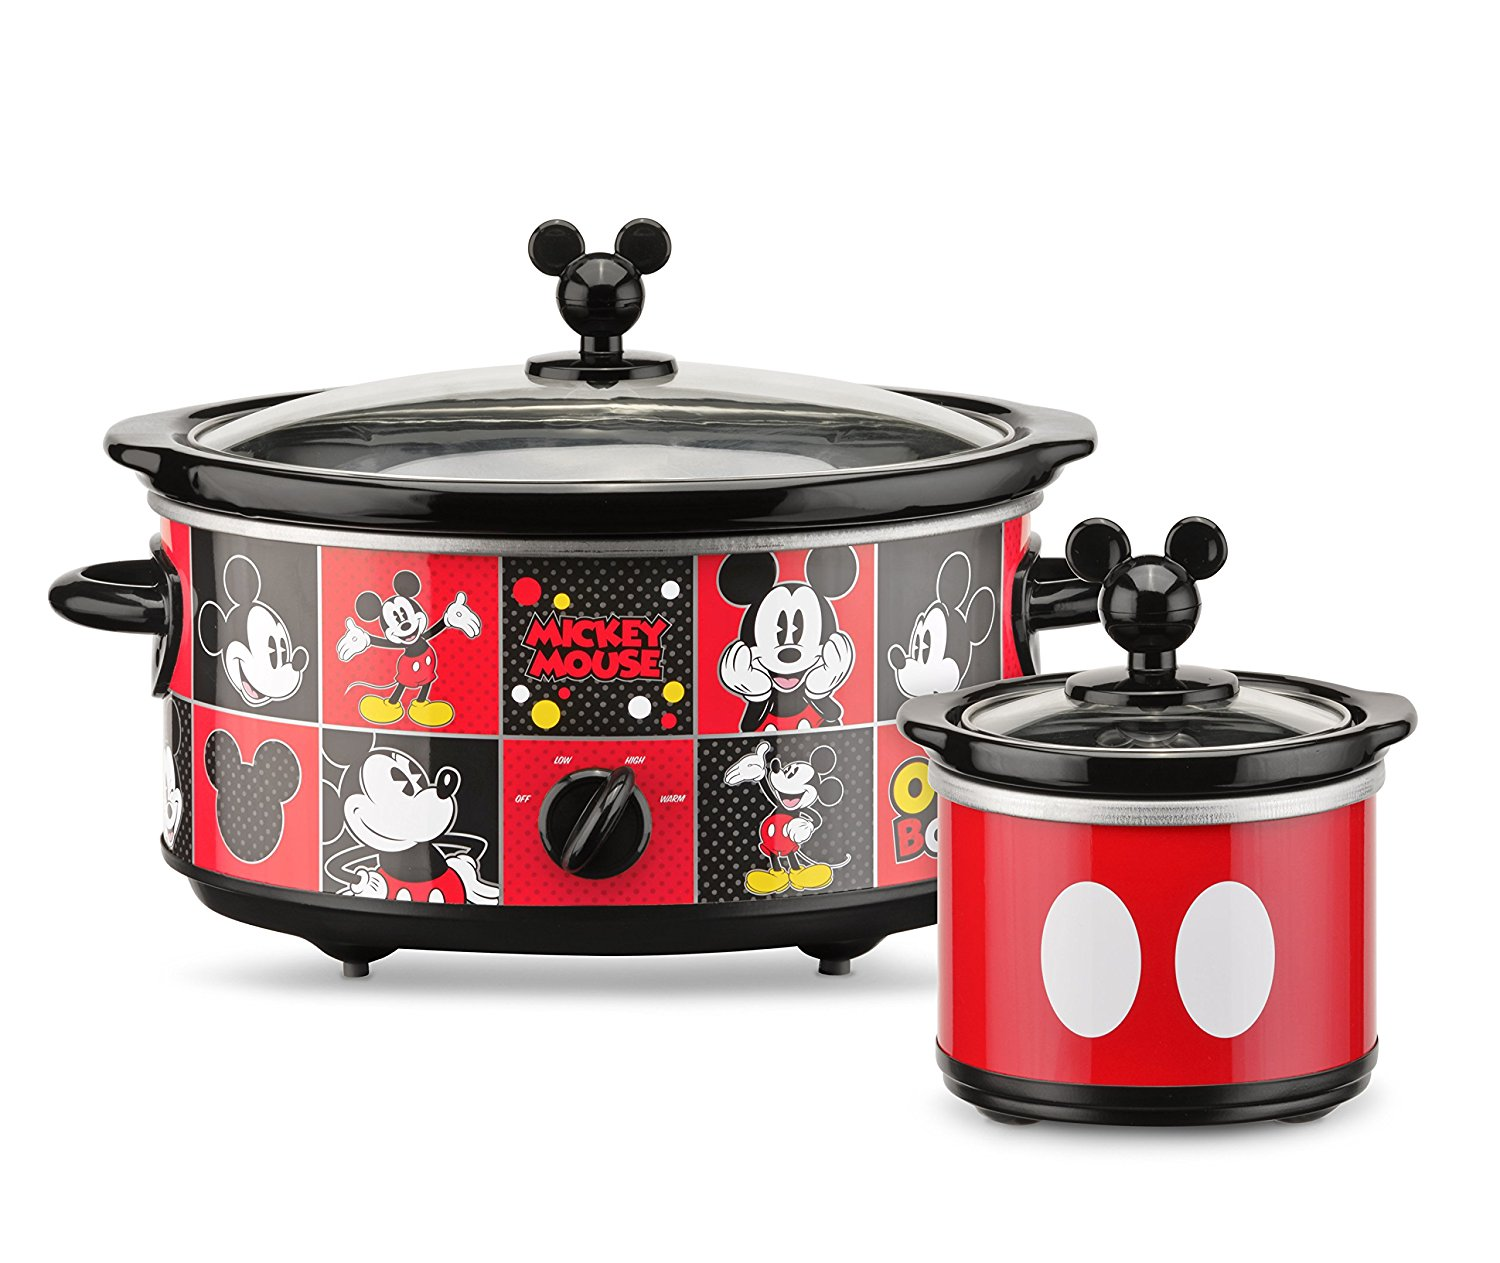 Disney Discovery Mickey Slow Cooker